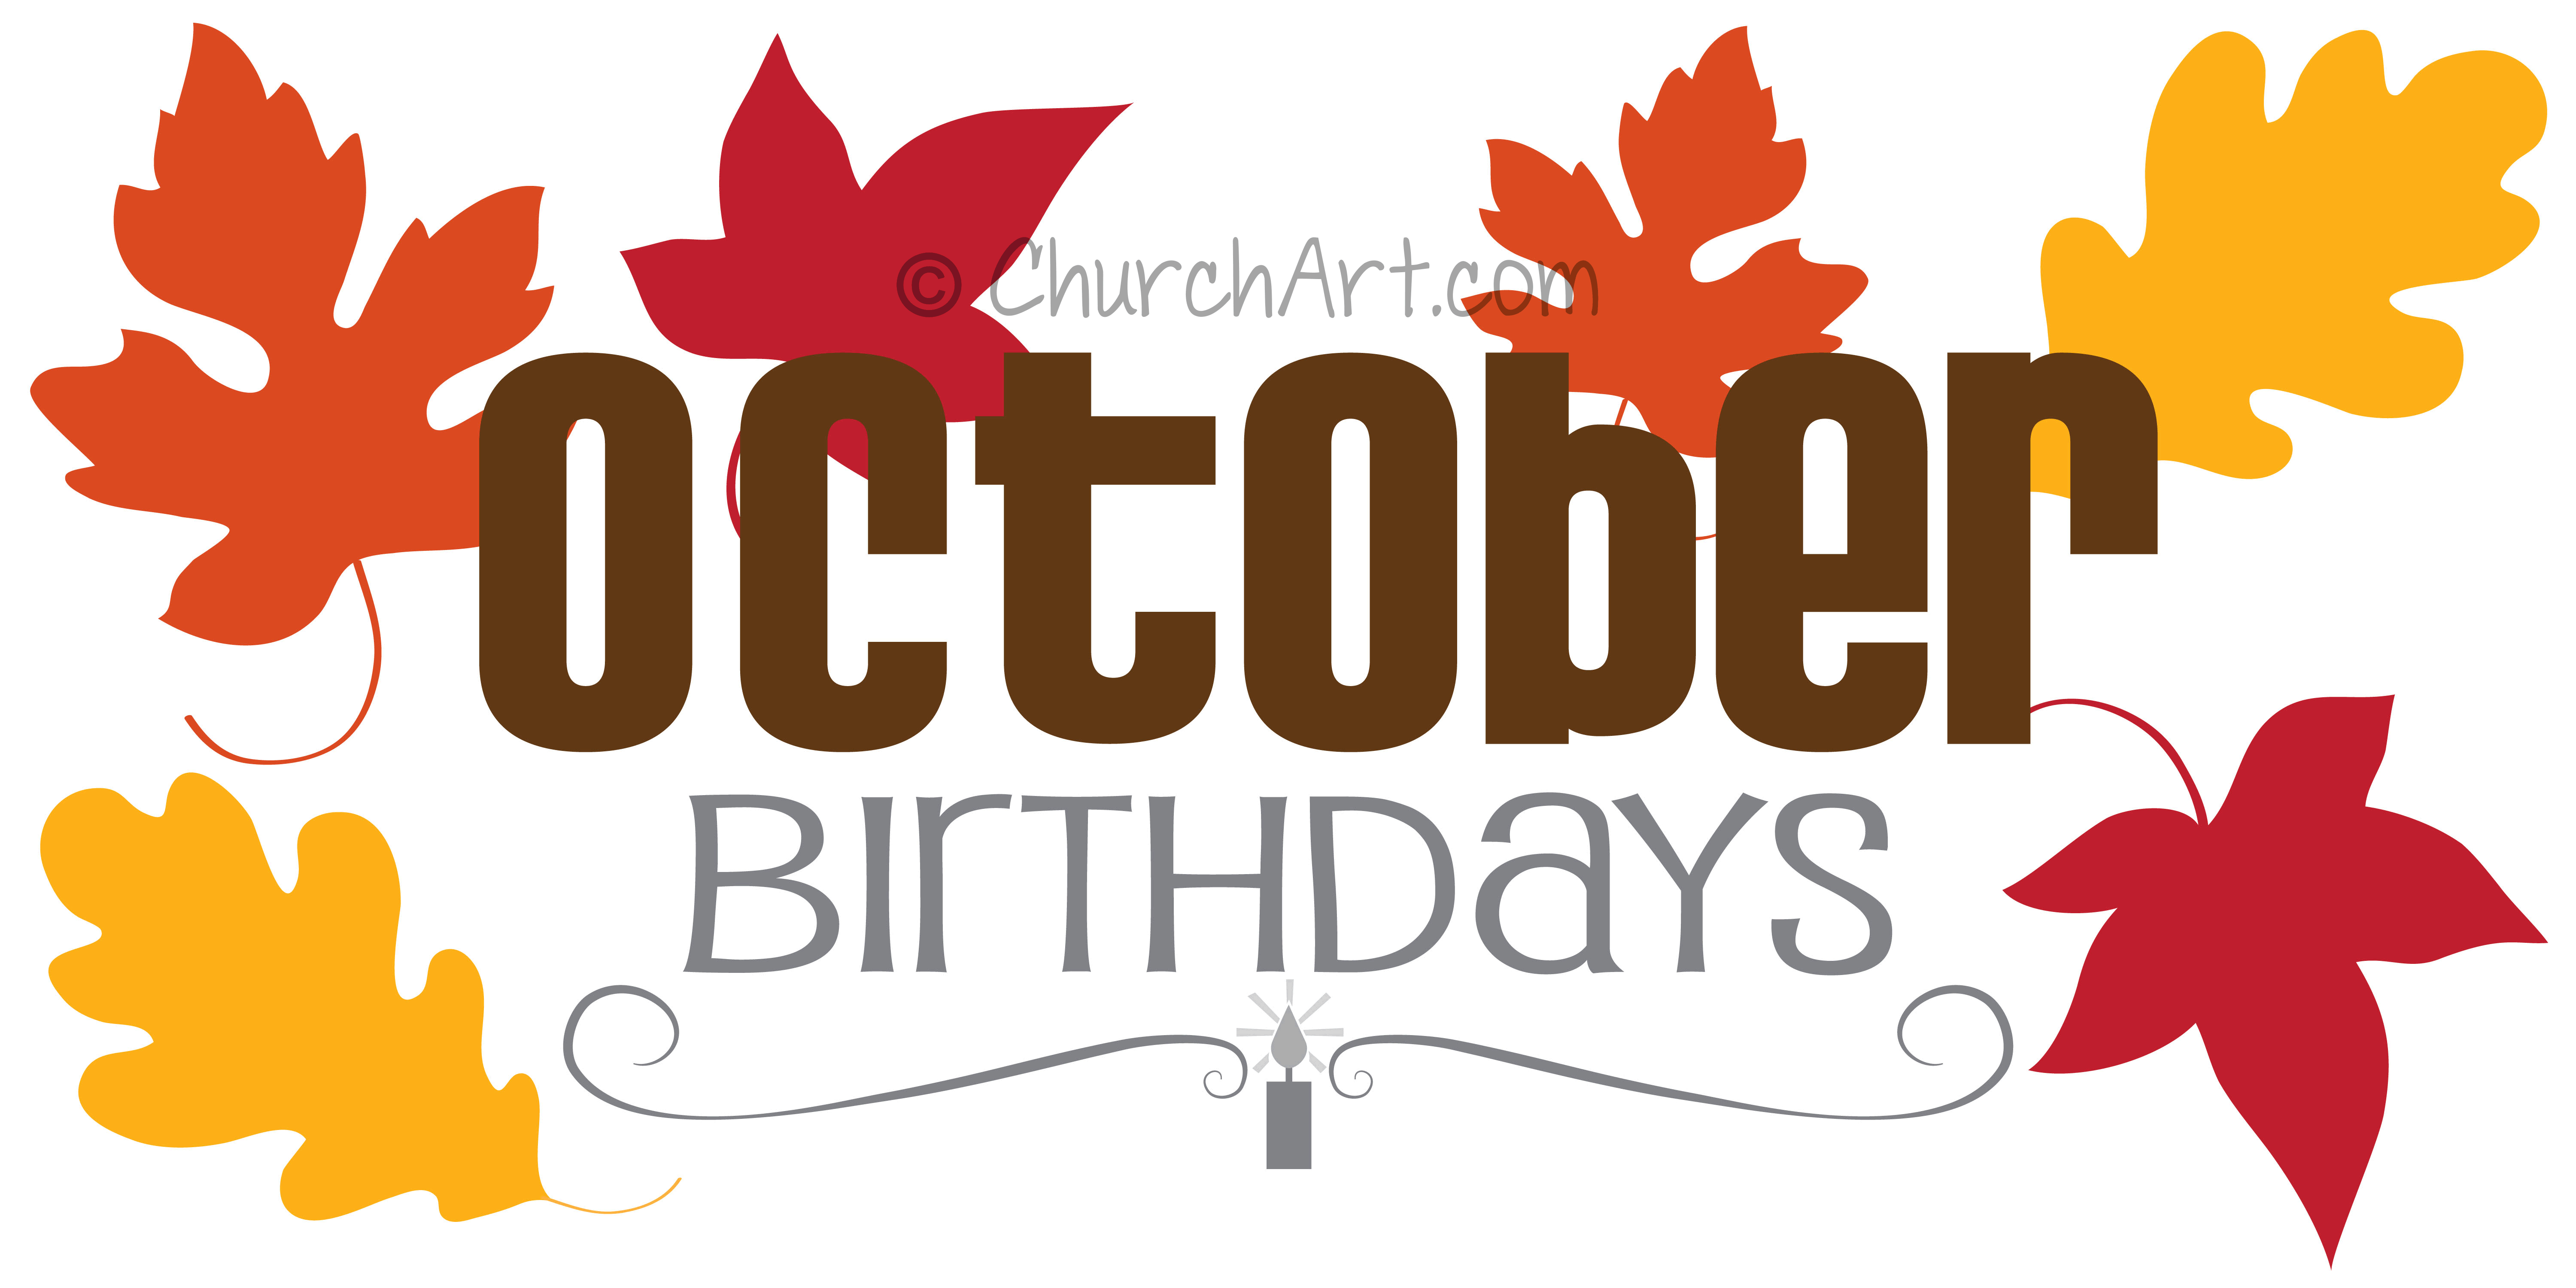 Clipart image for monthly church birthdays featured in church newsletter or bulletin